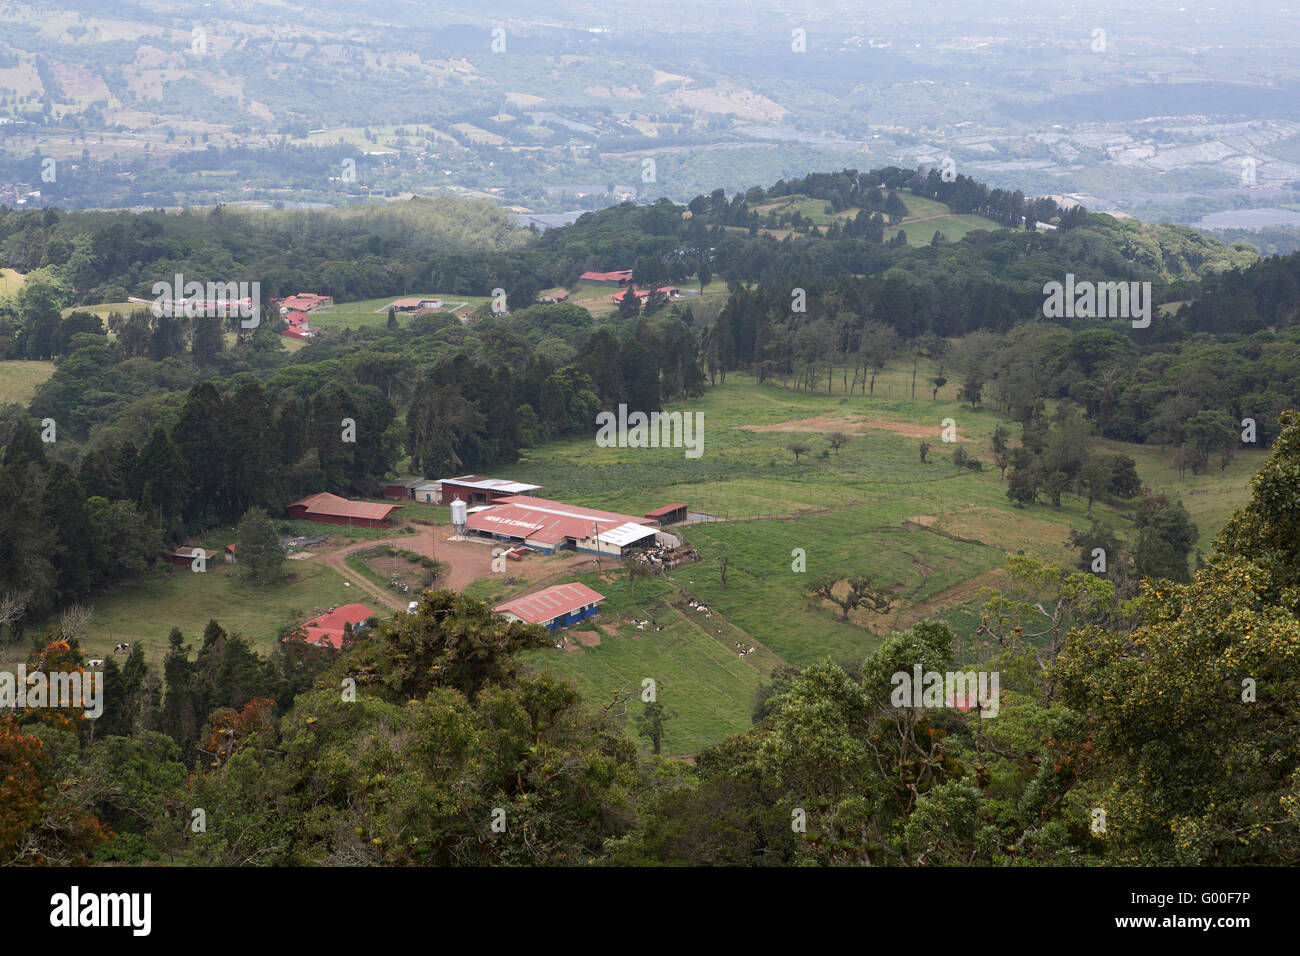 A dairy farm in Costa Rica. The verdant land in the Cordillera Central Mountain Range is fertile and productive. - Stock Image